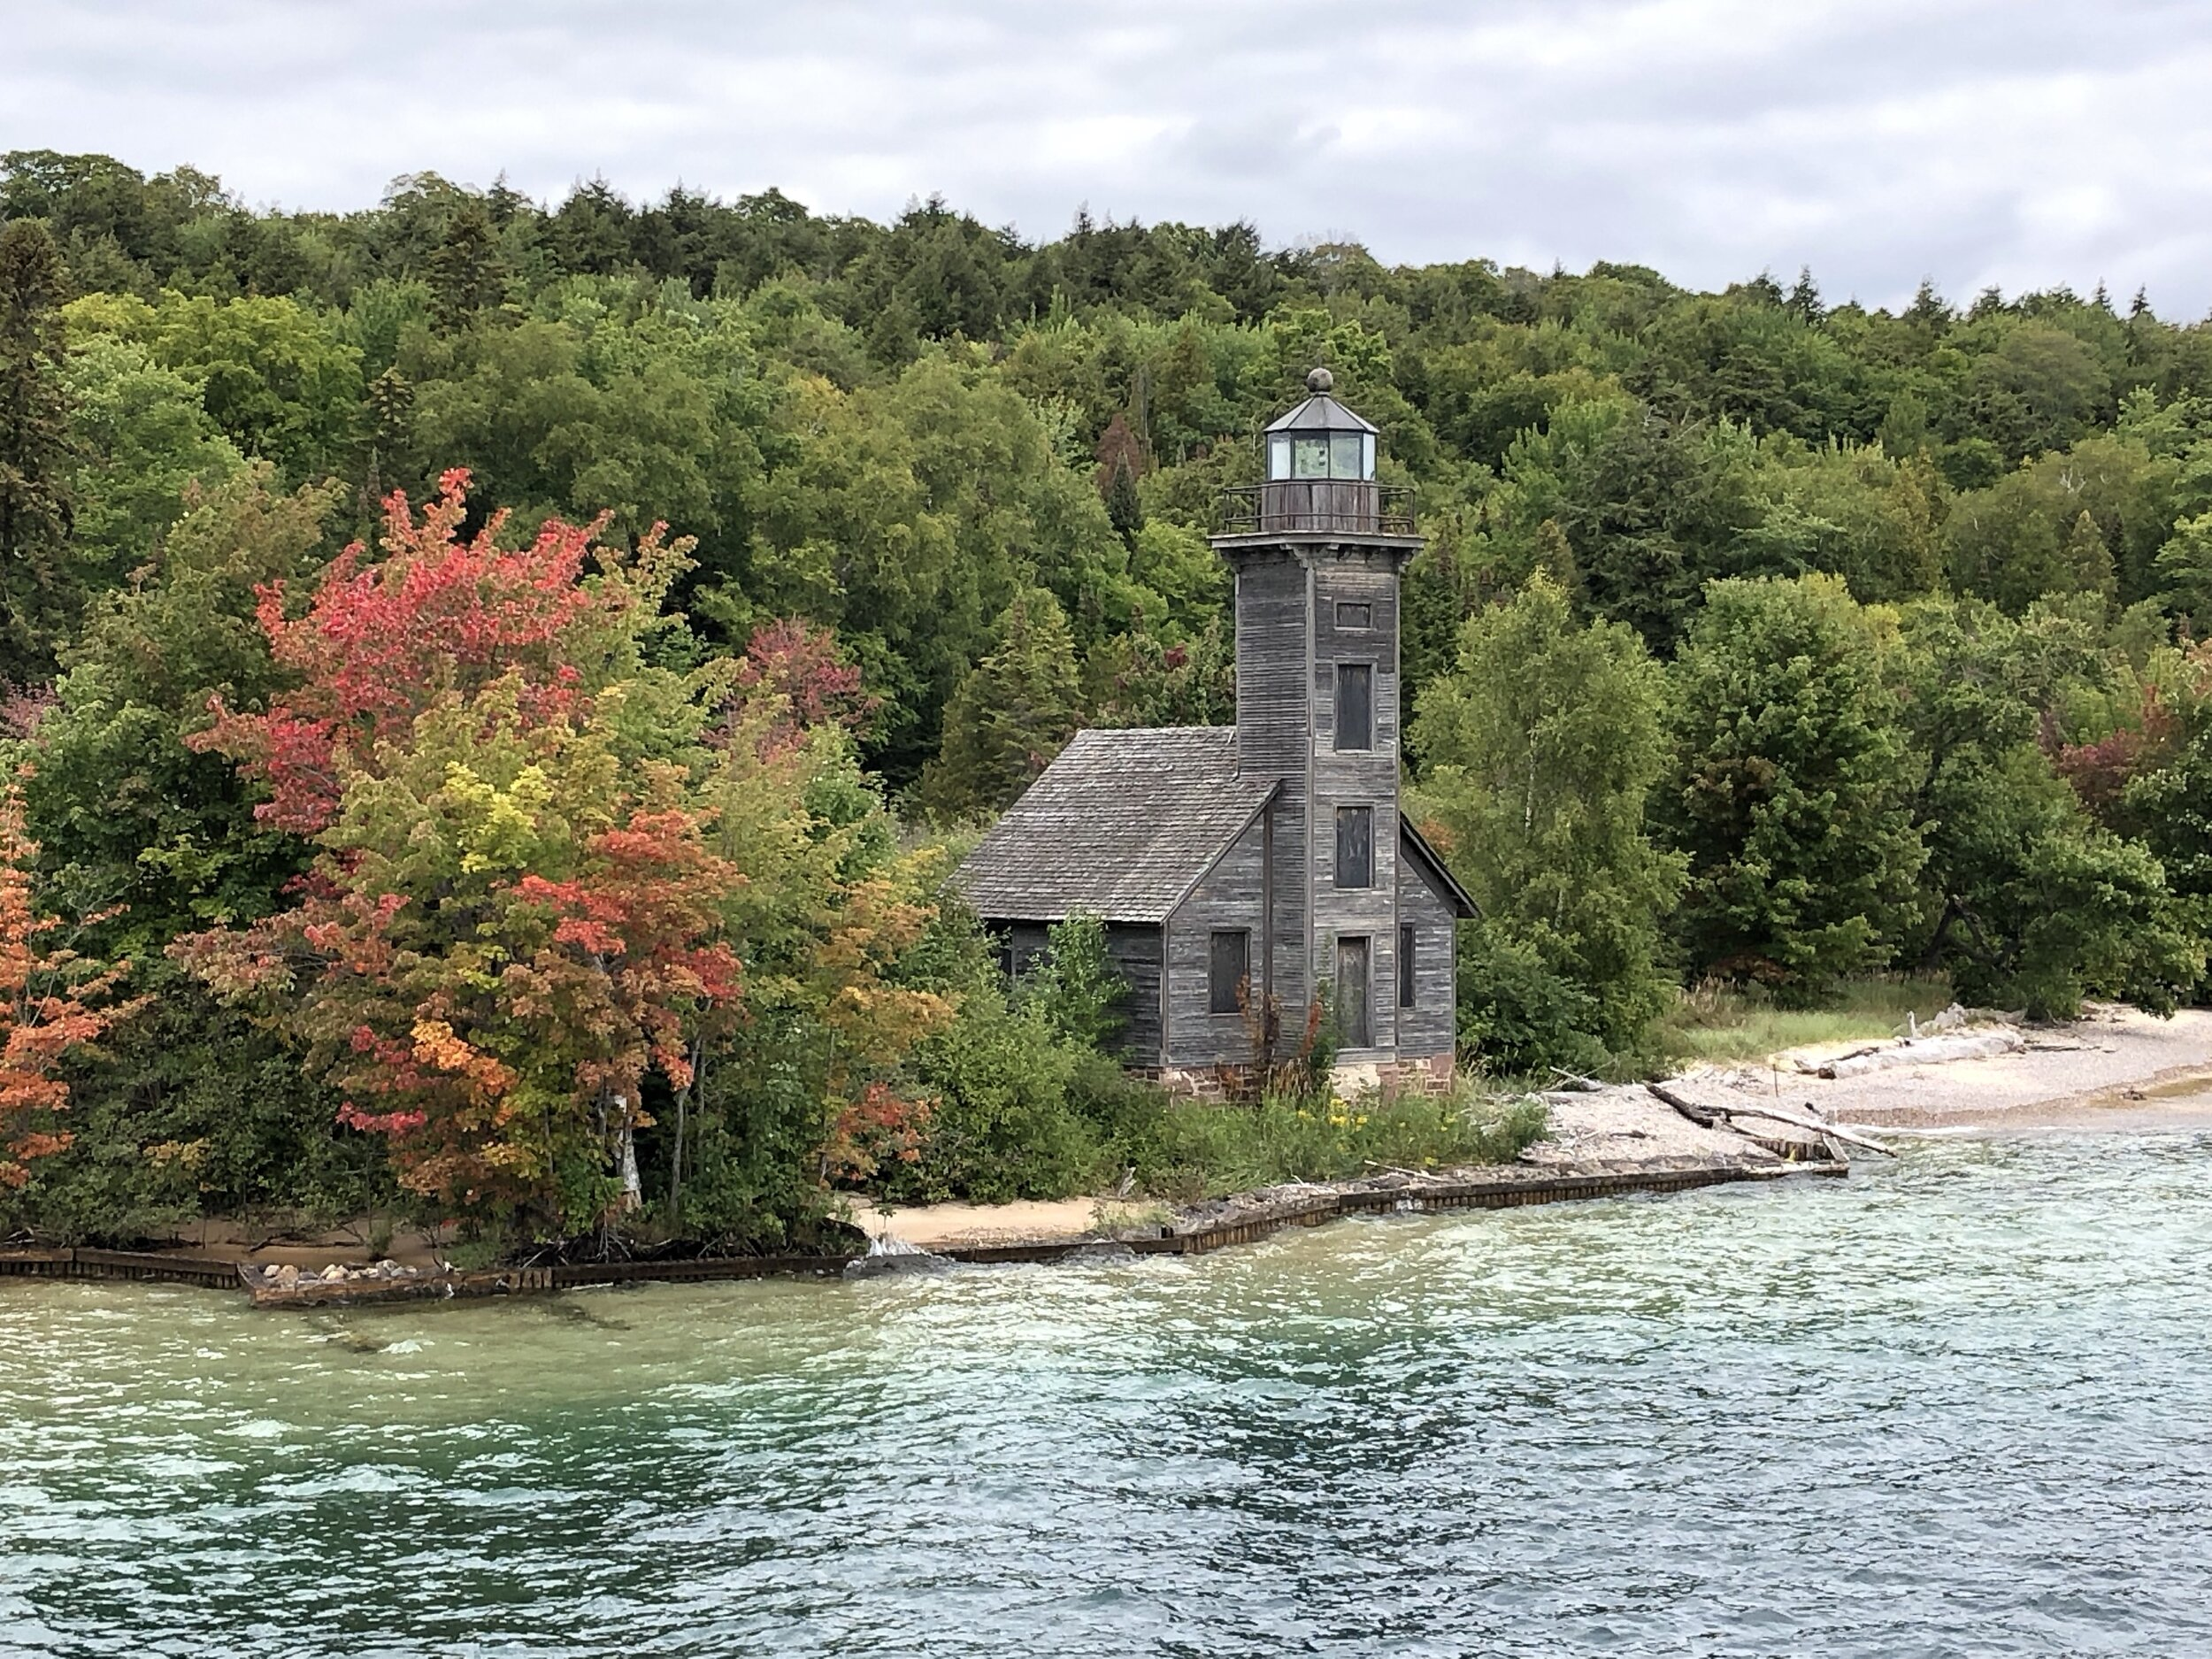 This is the Grand Island East Channel Lighthouse. It first opened for operation in 1868. It's the first week in September and trees are already turning along Lake Superior.